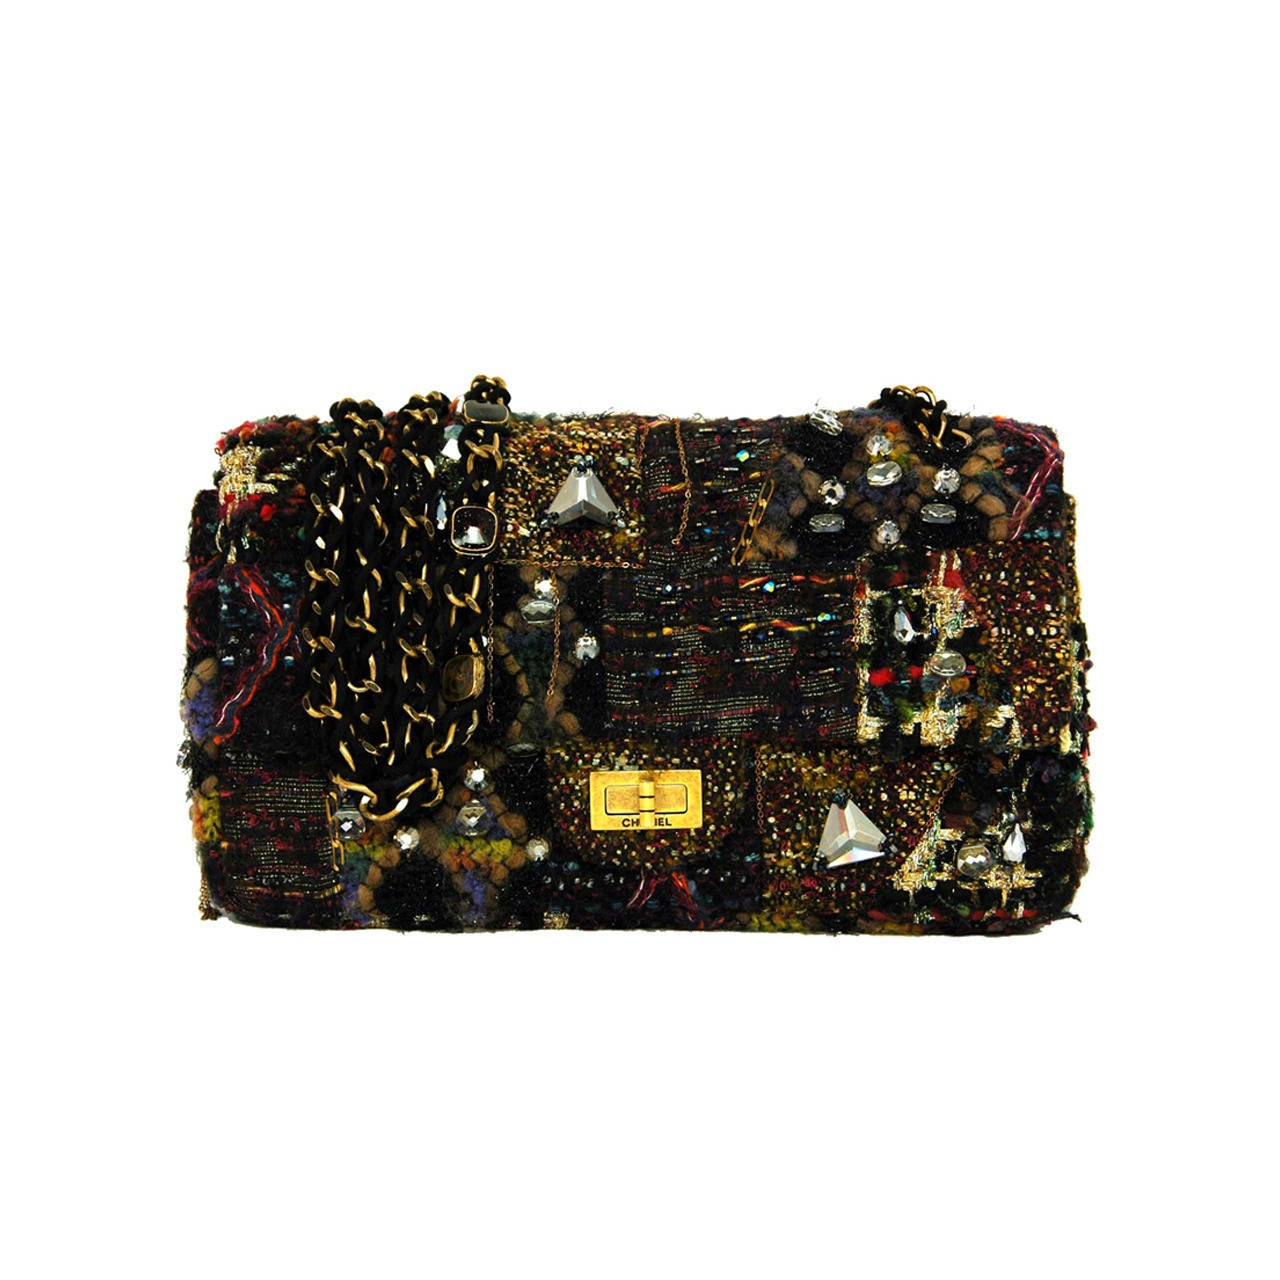 CHANEL Paris Byzance Limited Edition Lesage Tweed Jewel Encrusted Flap Bag  at 1stdibs d6f09425b19c1